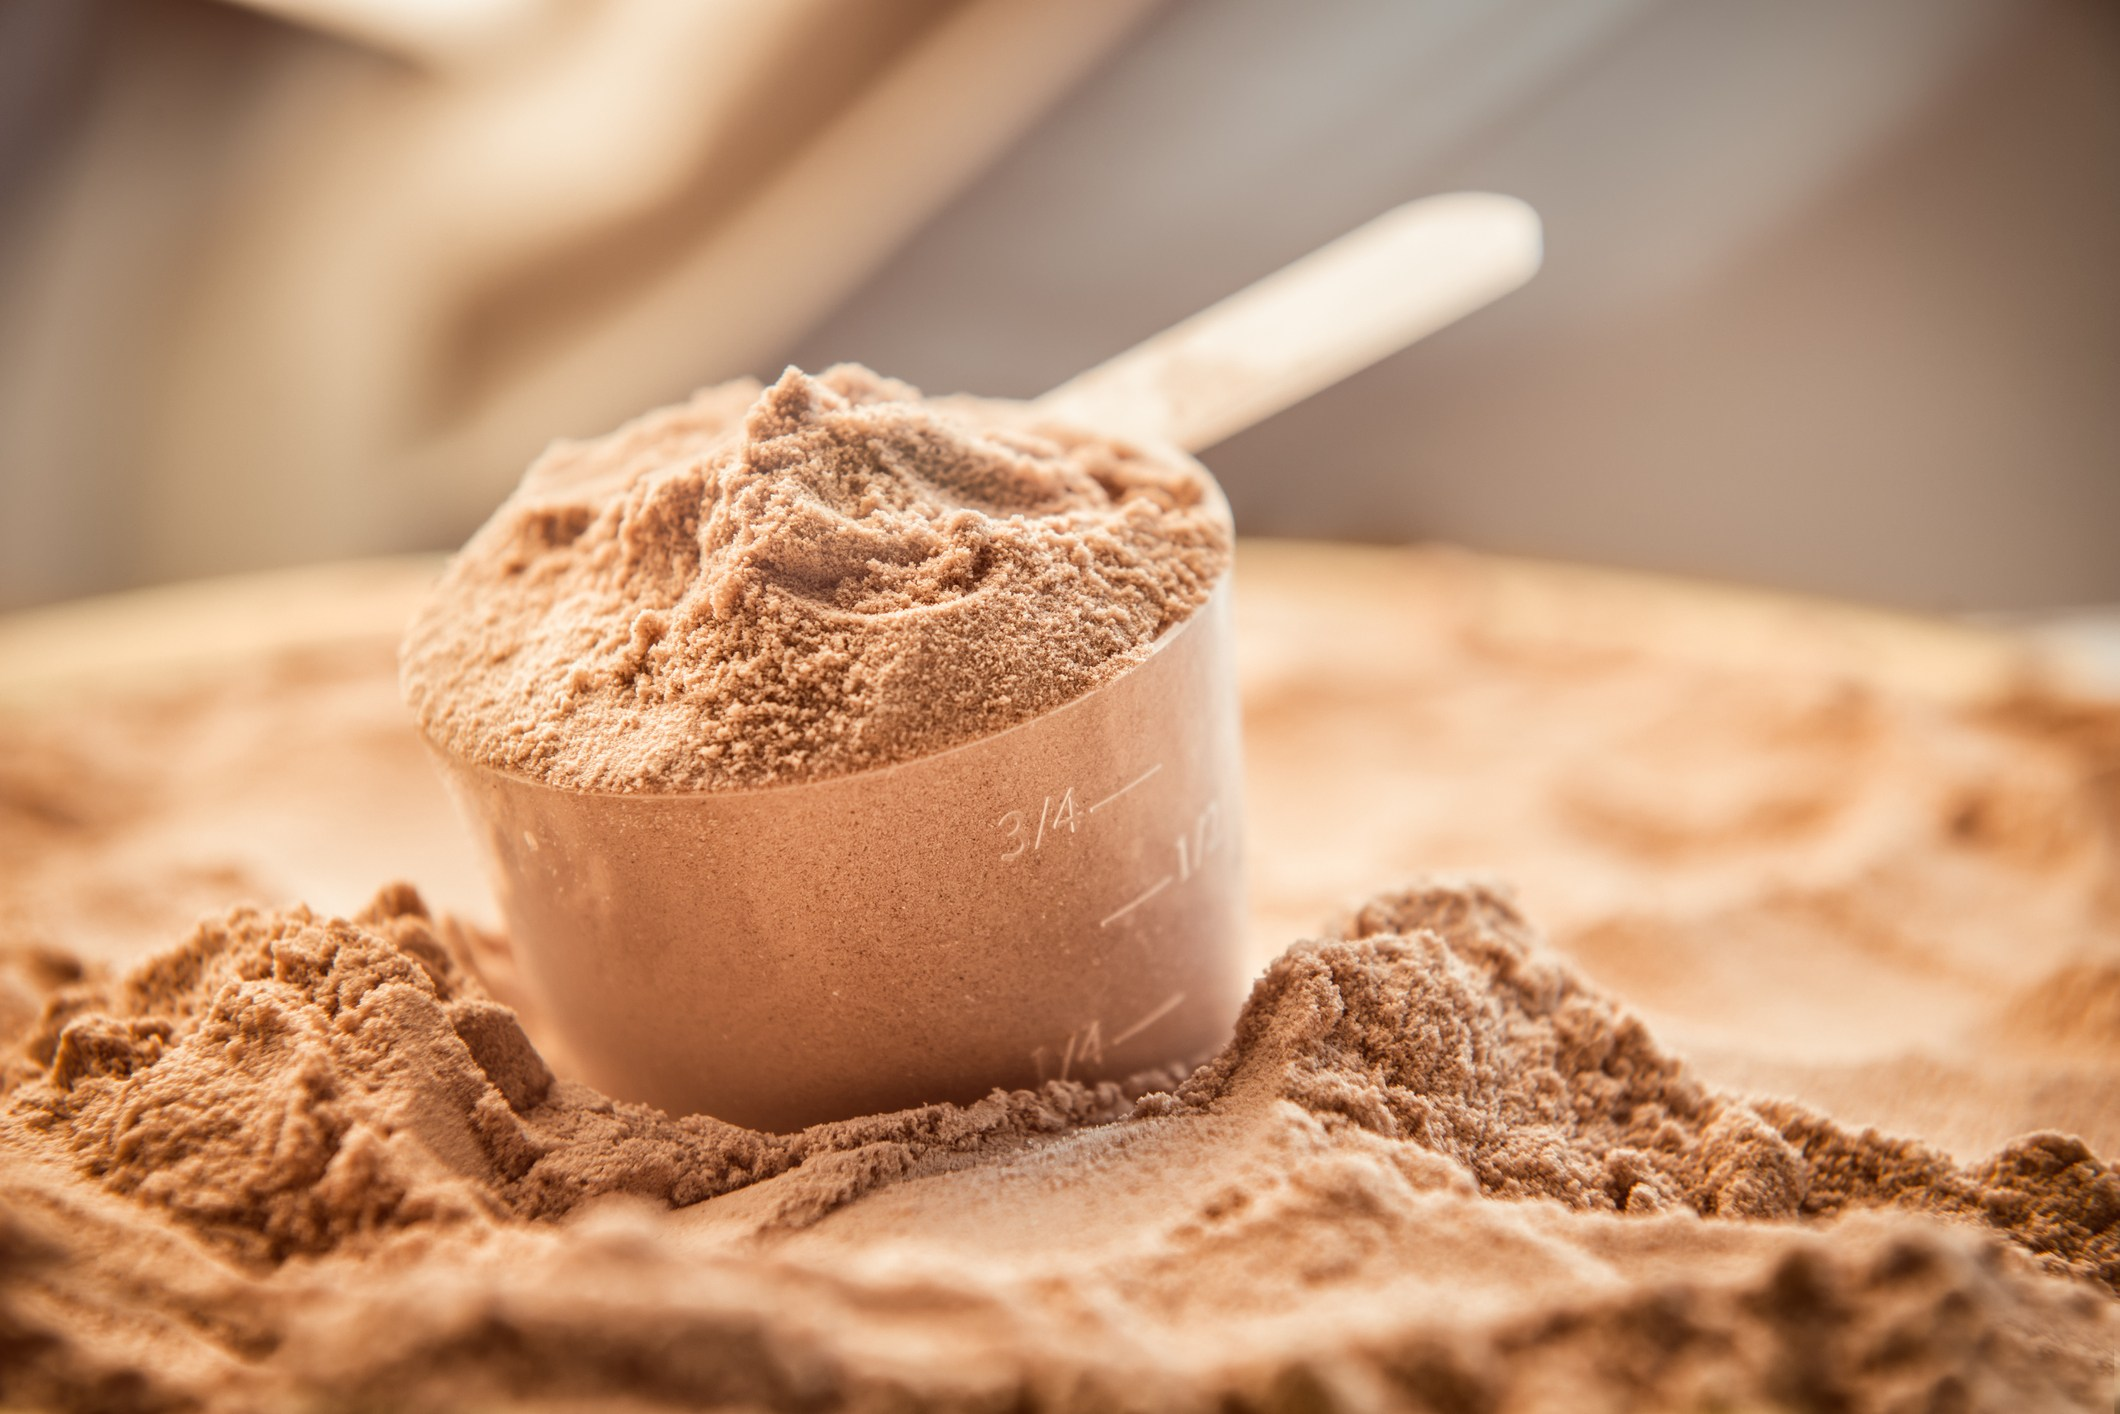 Casein Protein – Is Casein The Latest Sports Nutrition Trend?